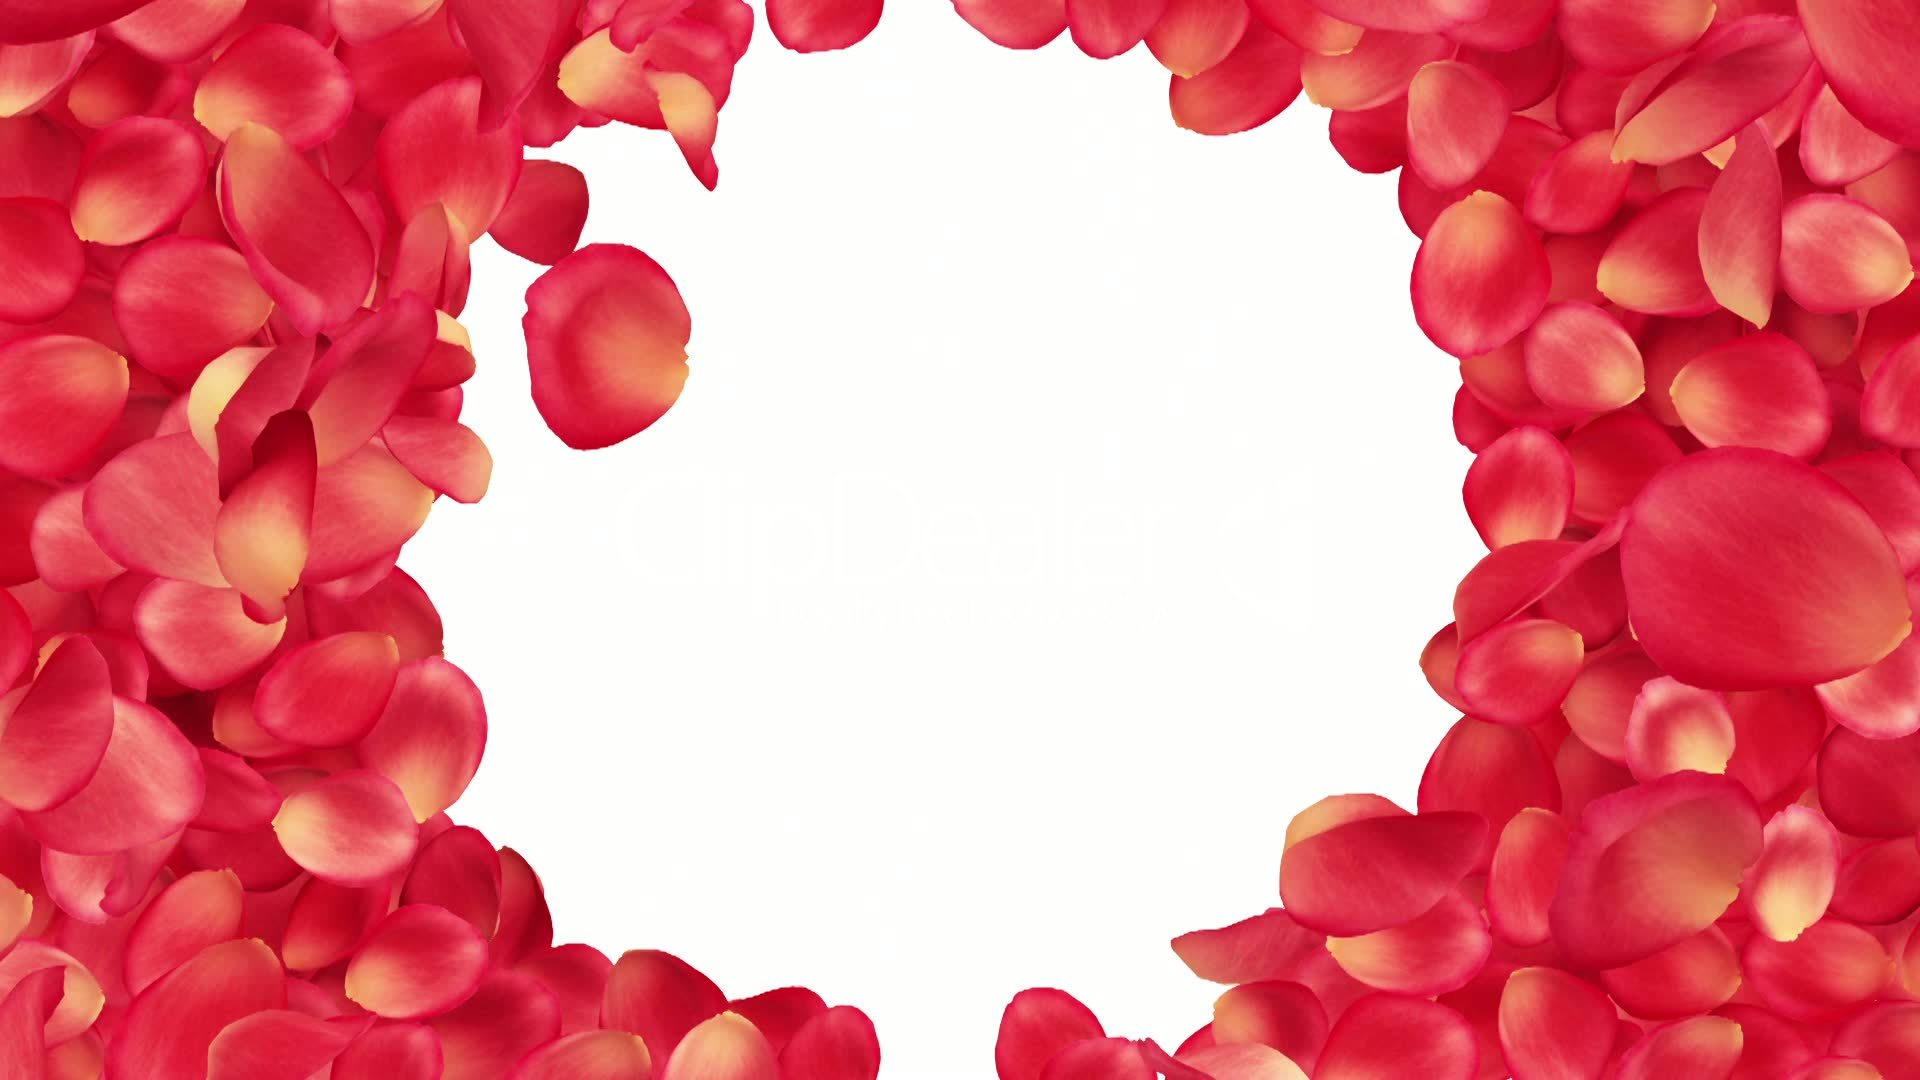 Beautiful Rose Petals Transition Useful For Greetings And Gifts